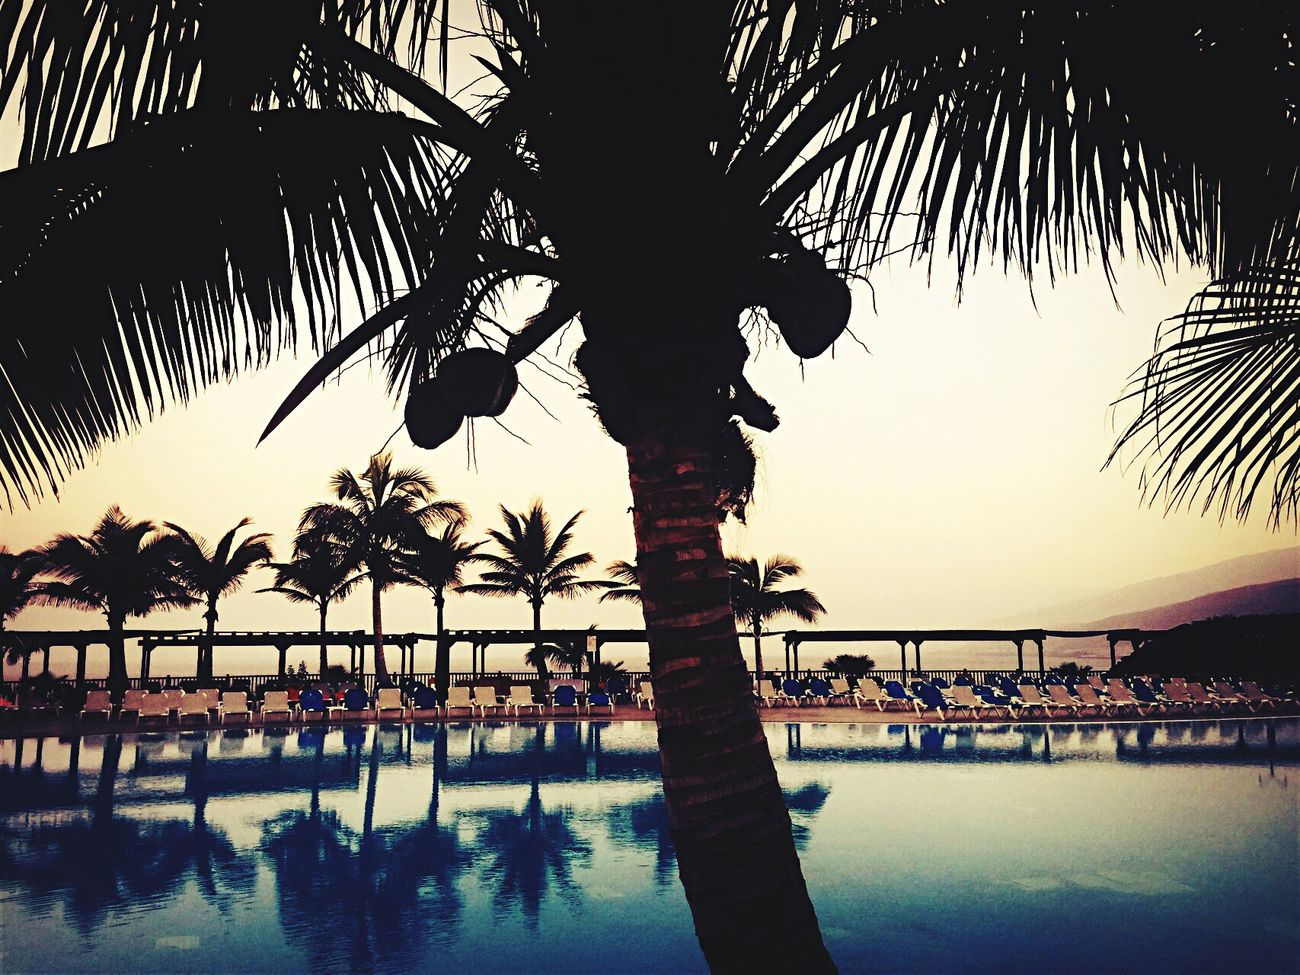 Holiday Tranquility Vacations Tourist Resort Swimming Pool Palm Tree , Tree Water Tree Trunk Silhouette Leisure Activity Lifestyles Sunset Horizon Over Water Scenics Branch Growth Palm Leaf Nature Calm Swimmingpool Shadow Shadows & Lights Palm Tree Silhouette First Eyeem Photo